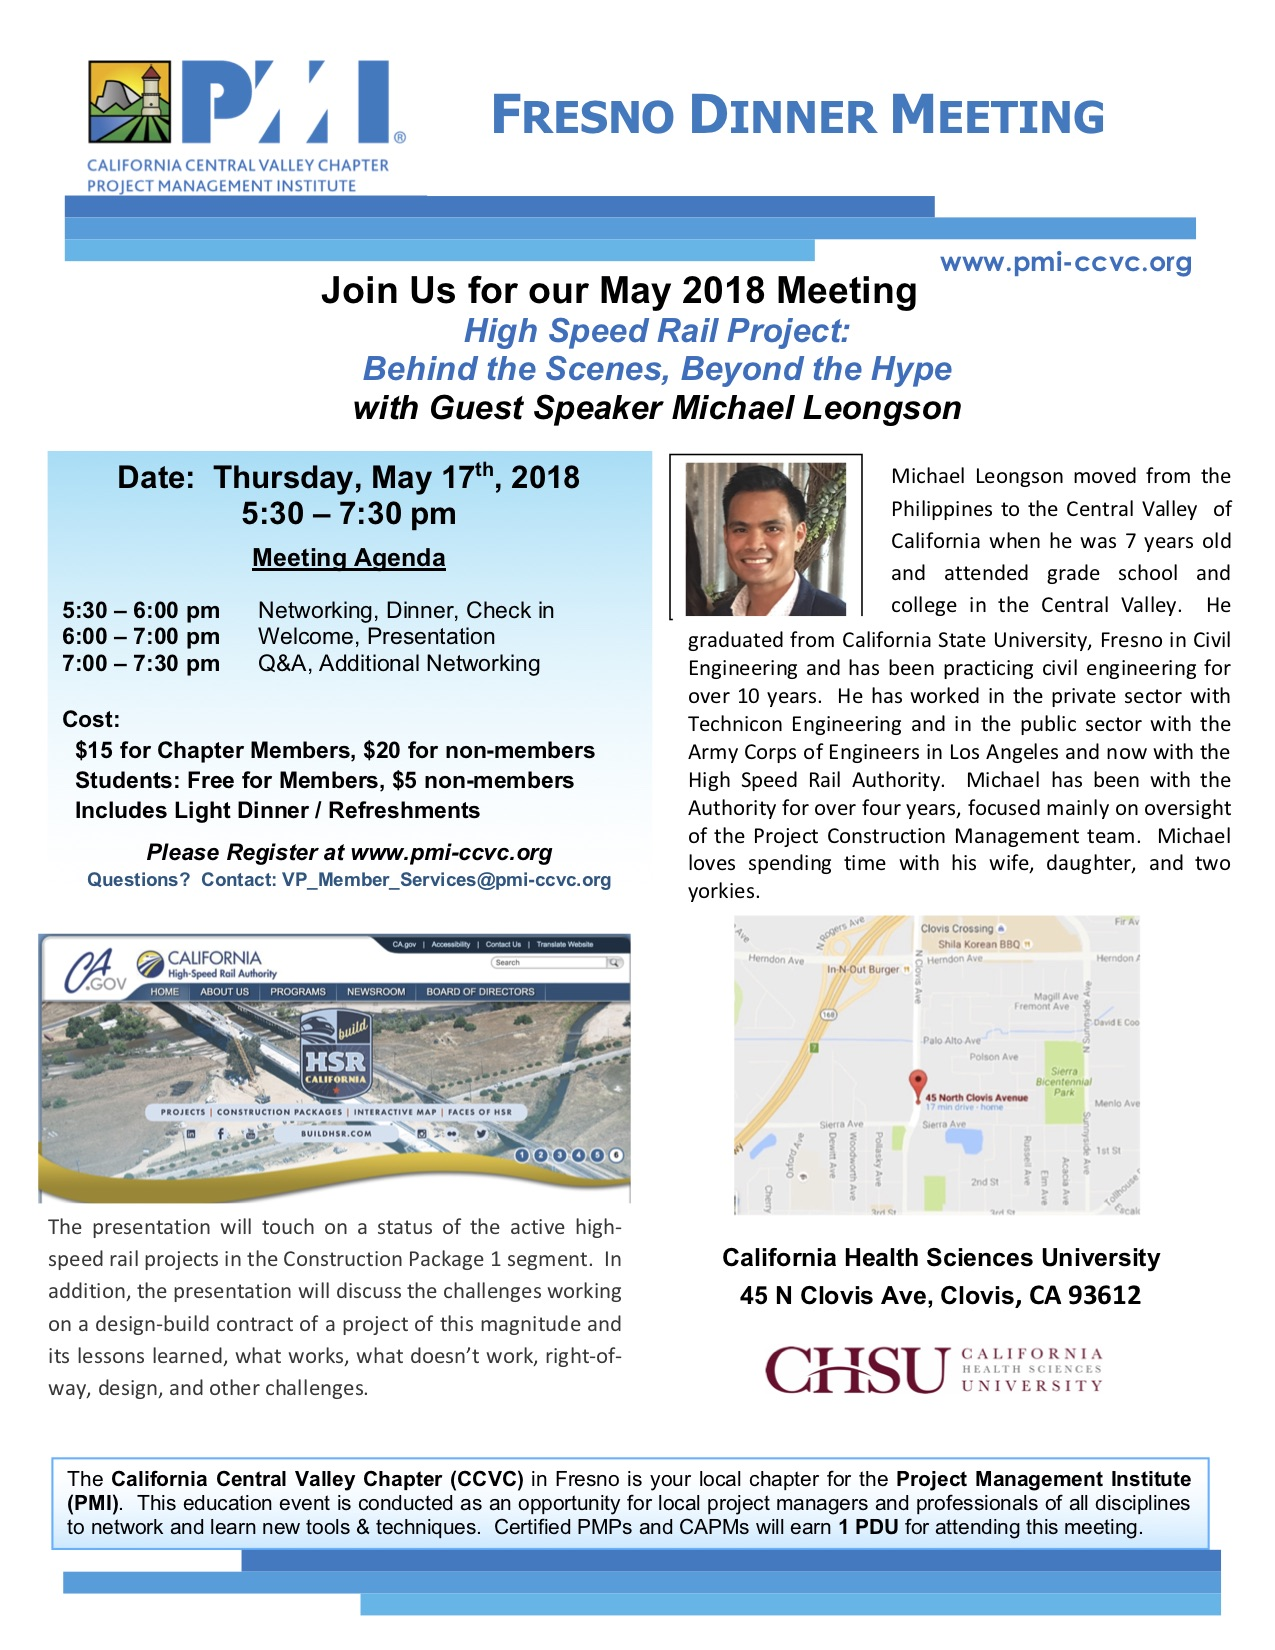 May 17th 2018 Fresno Dinner Meeting Flyer